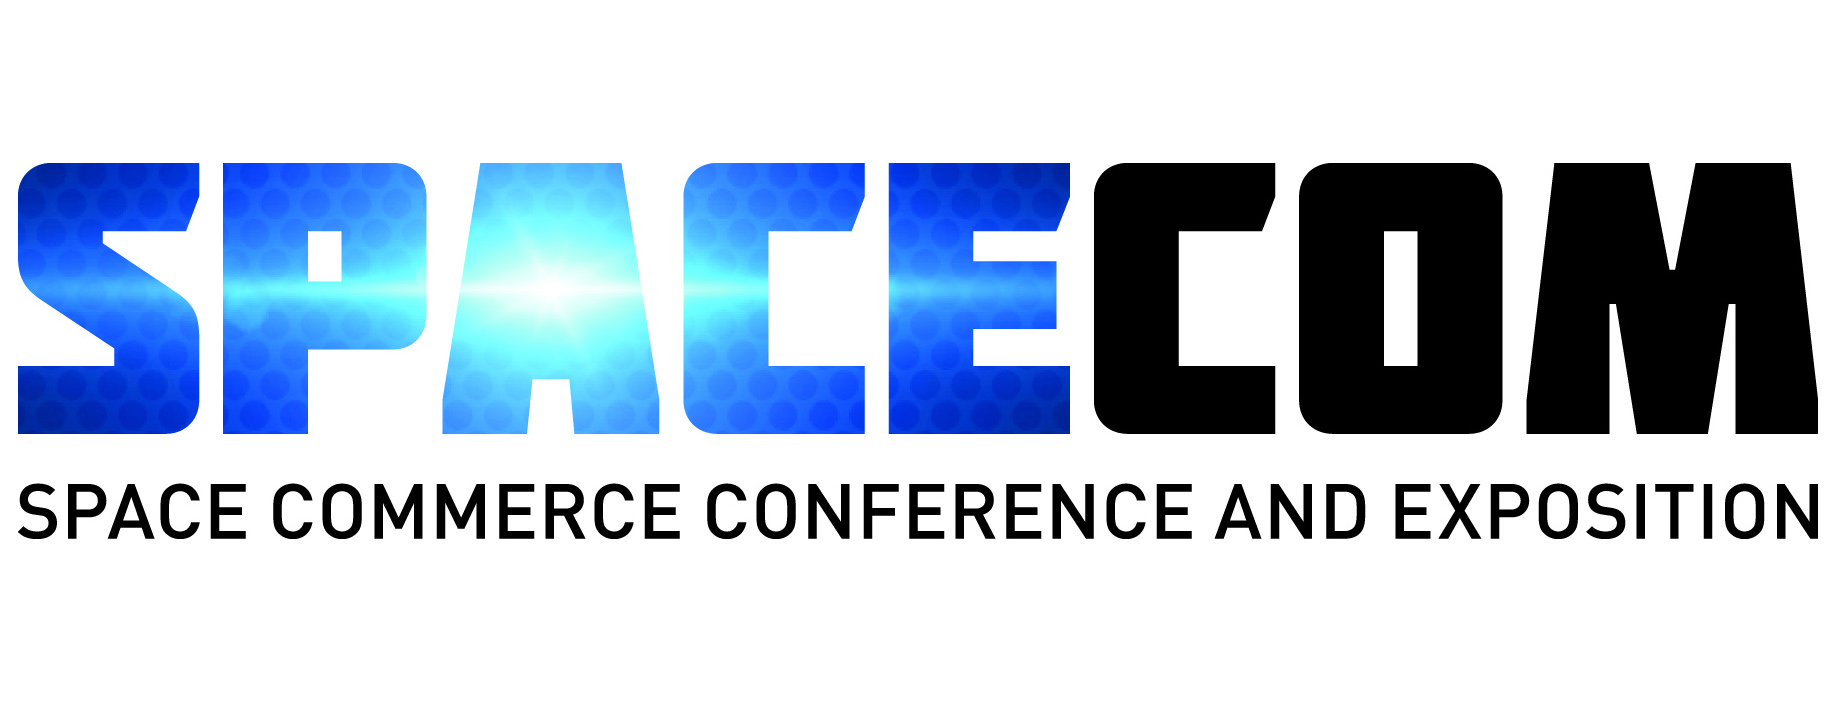 Space Commerce Conference and Exposition (SpaceCom)